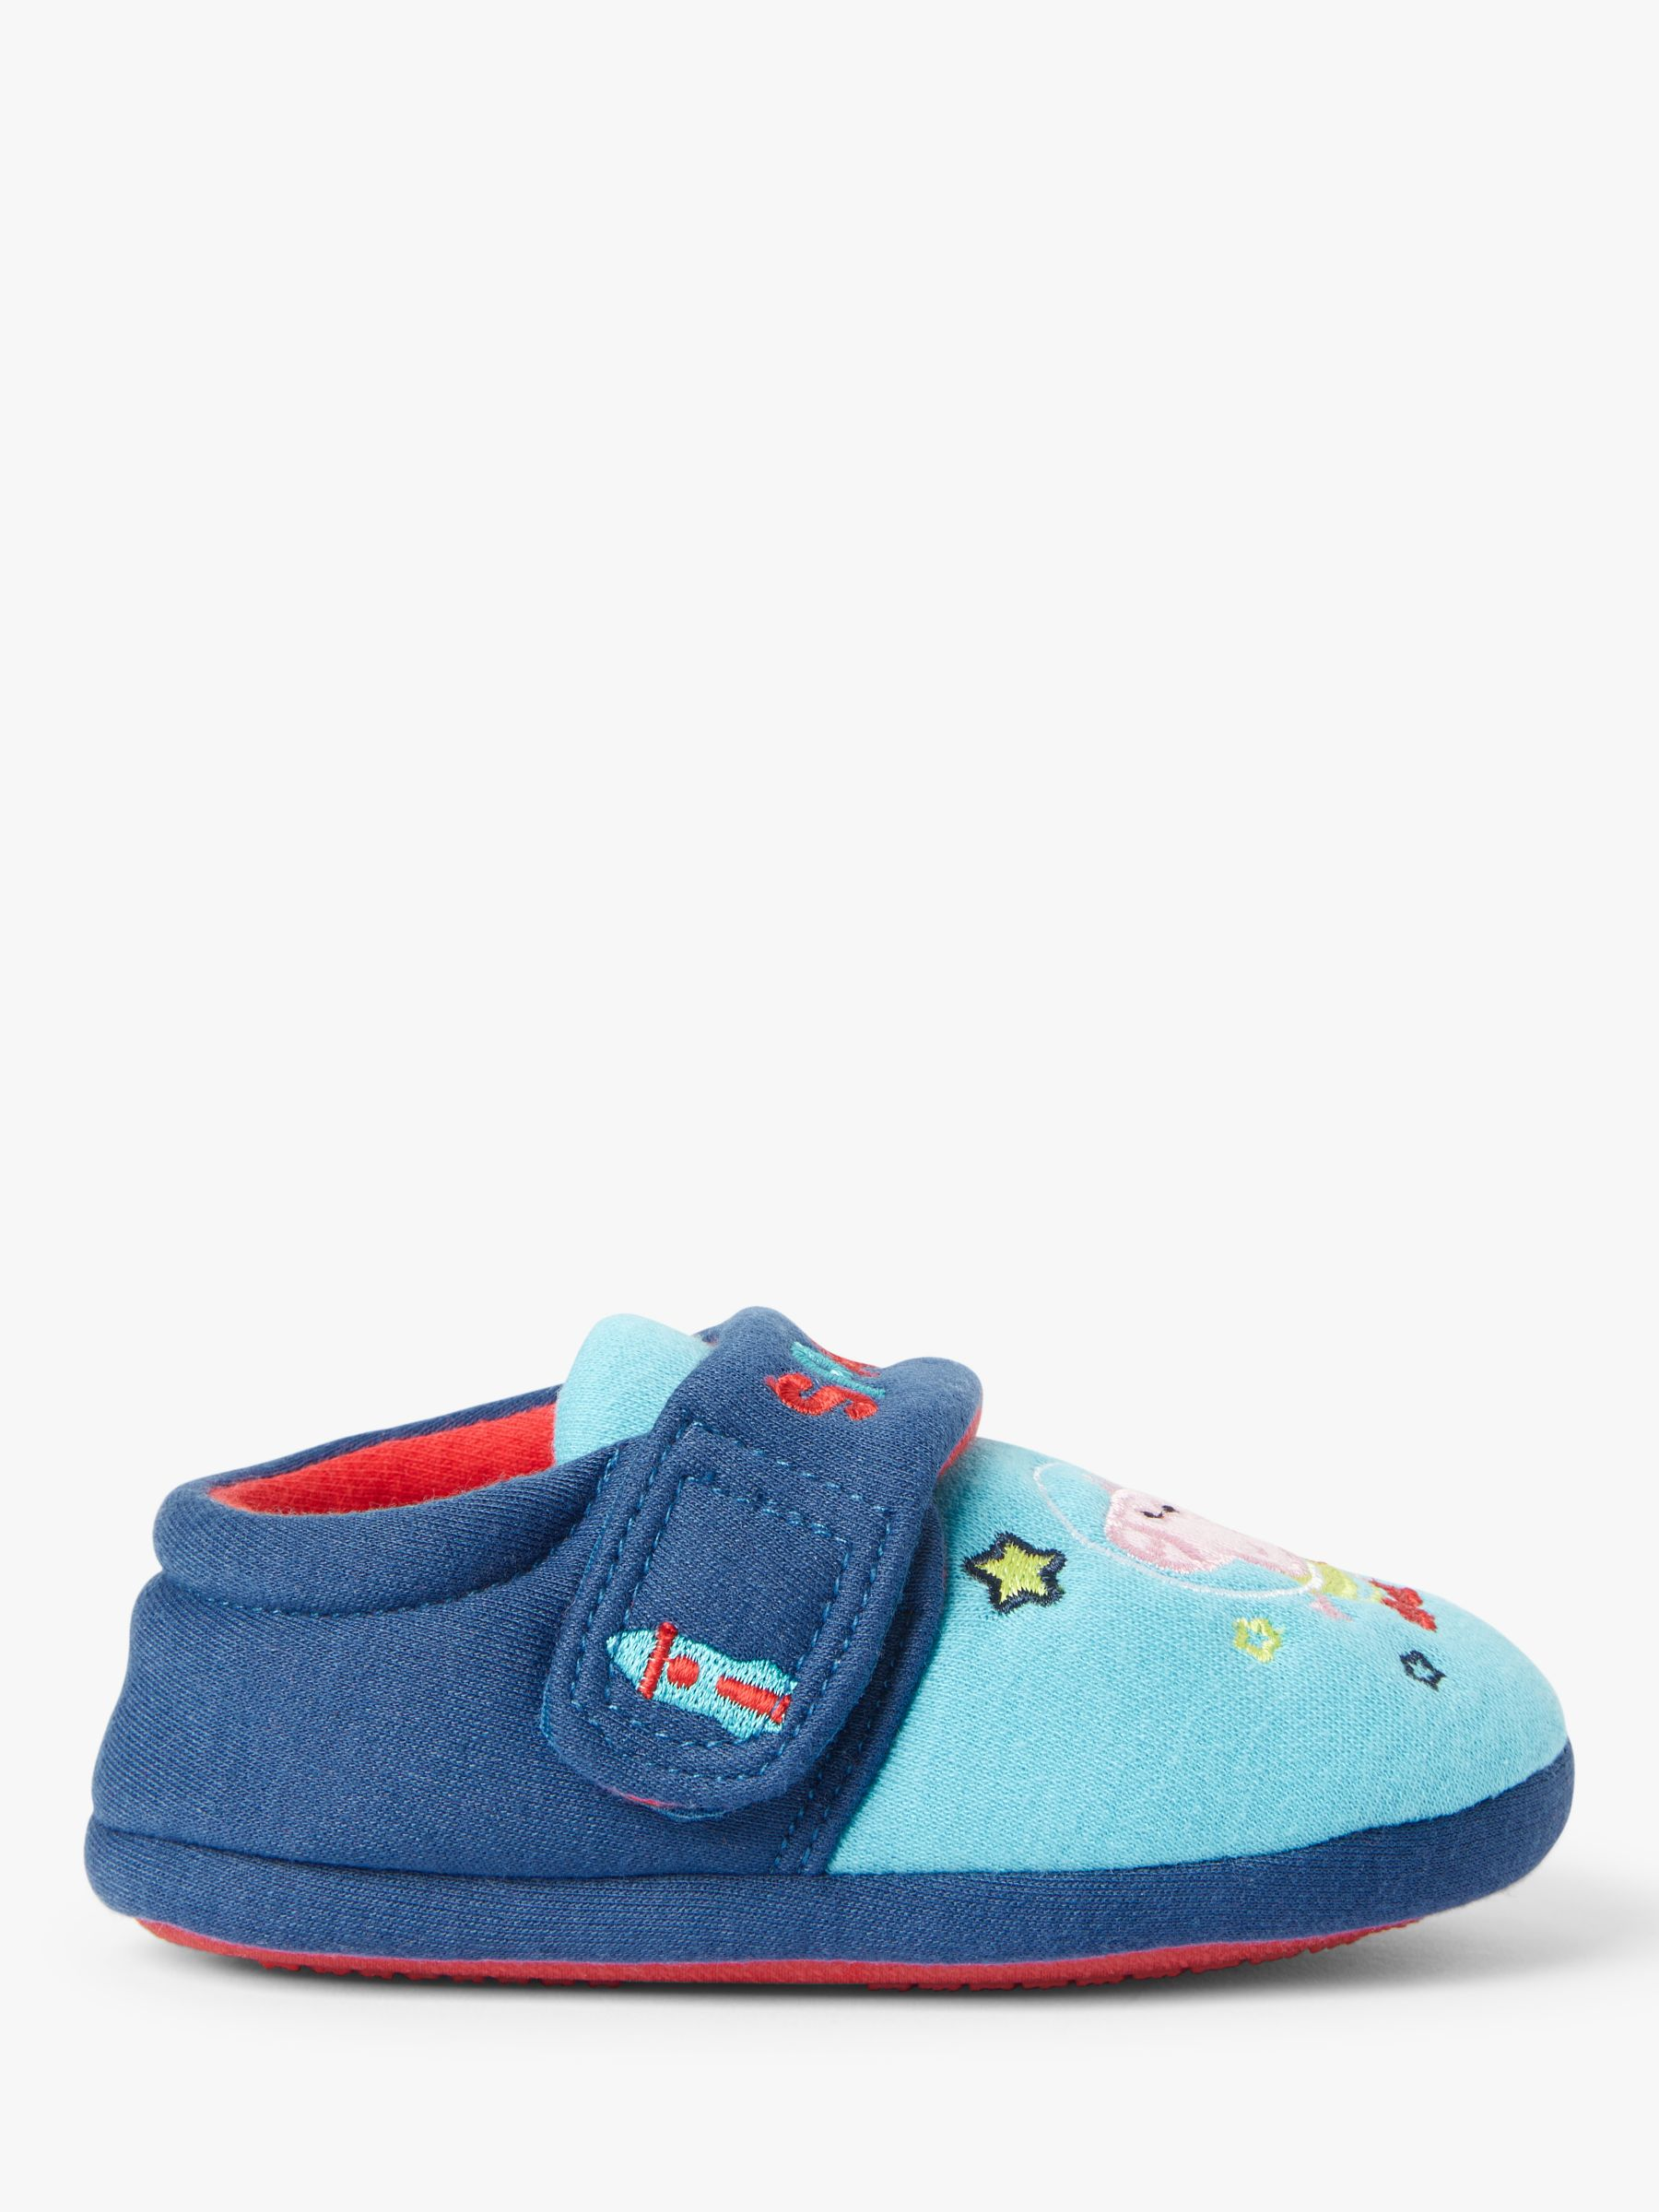 Peppa Pig Peppa Pig Children's George in Space Slippers, Blue